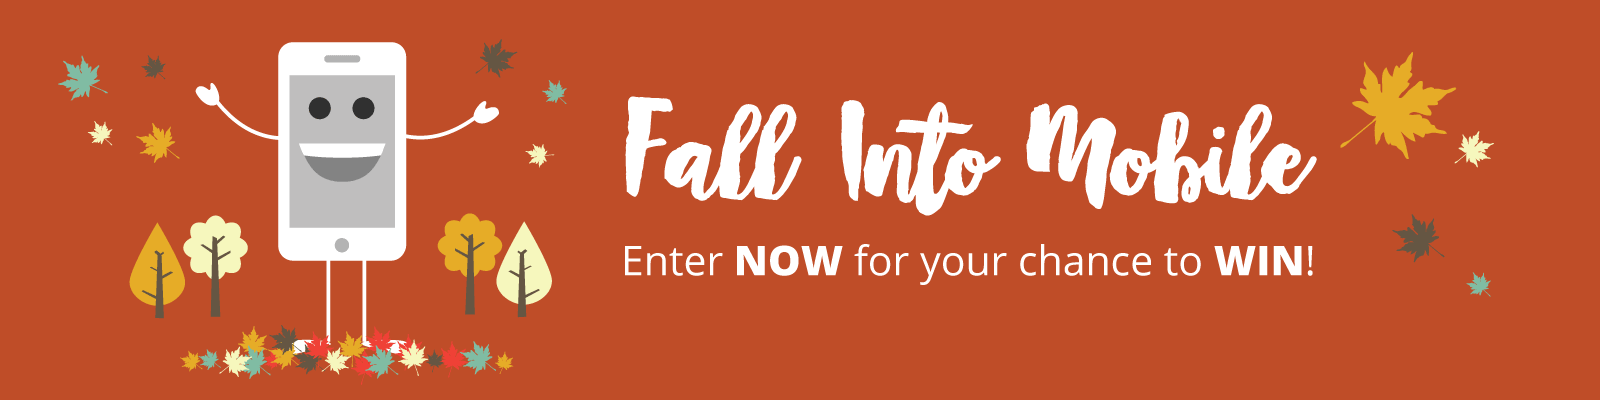 Fall Into Mobile Social Media Contest Banner